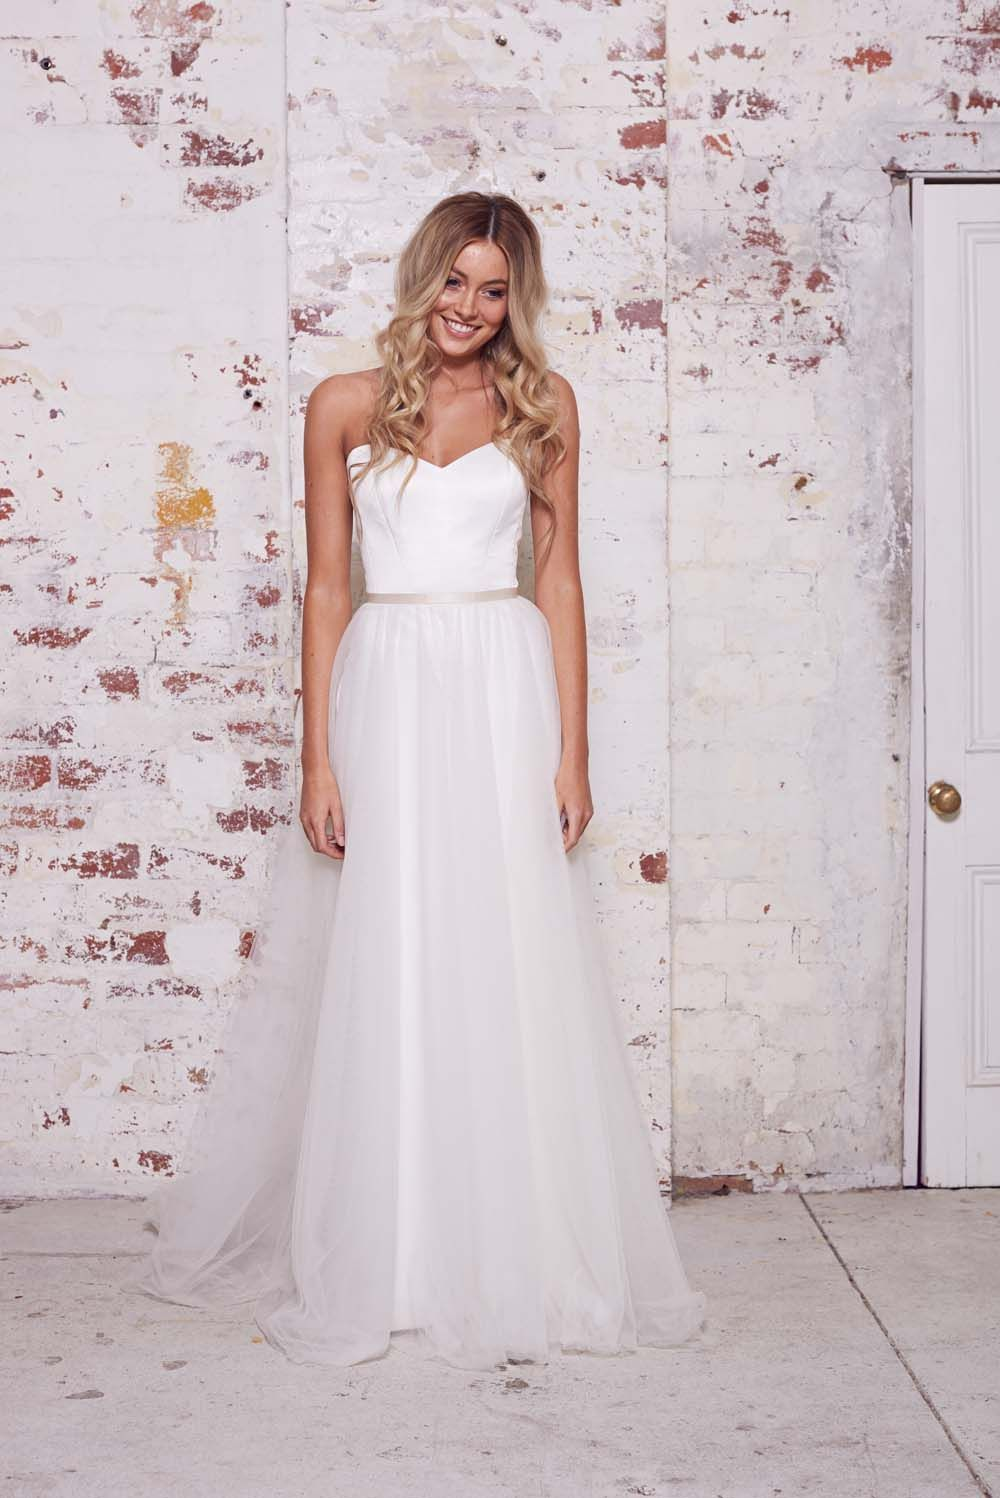 Wild hearts wed pinterest color themes wedding and wedding dress